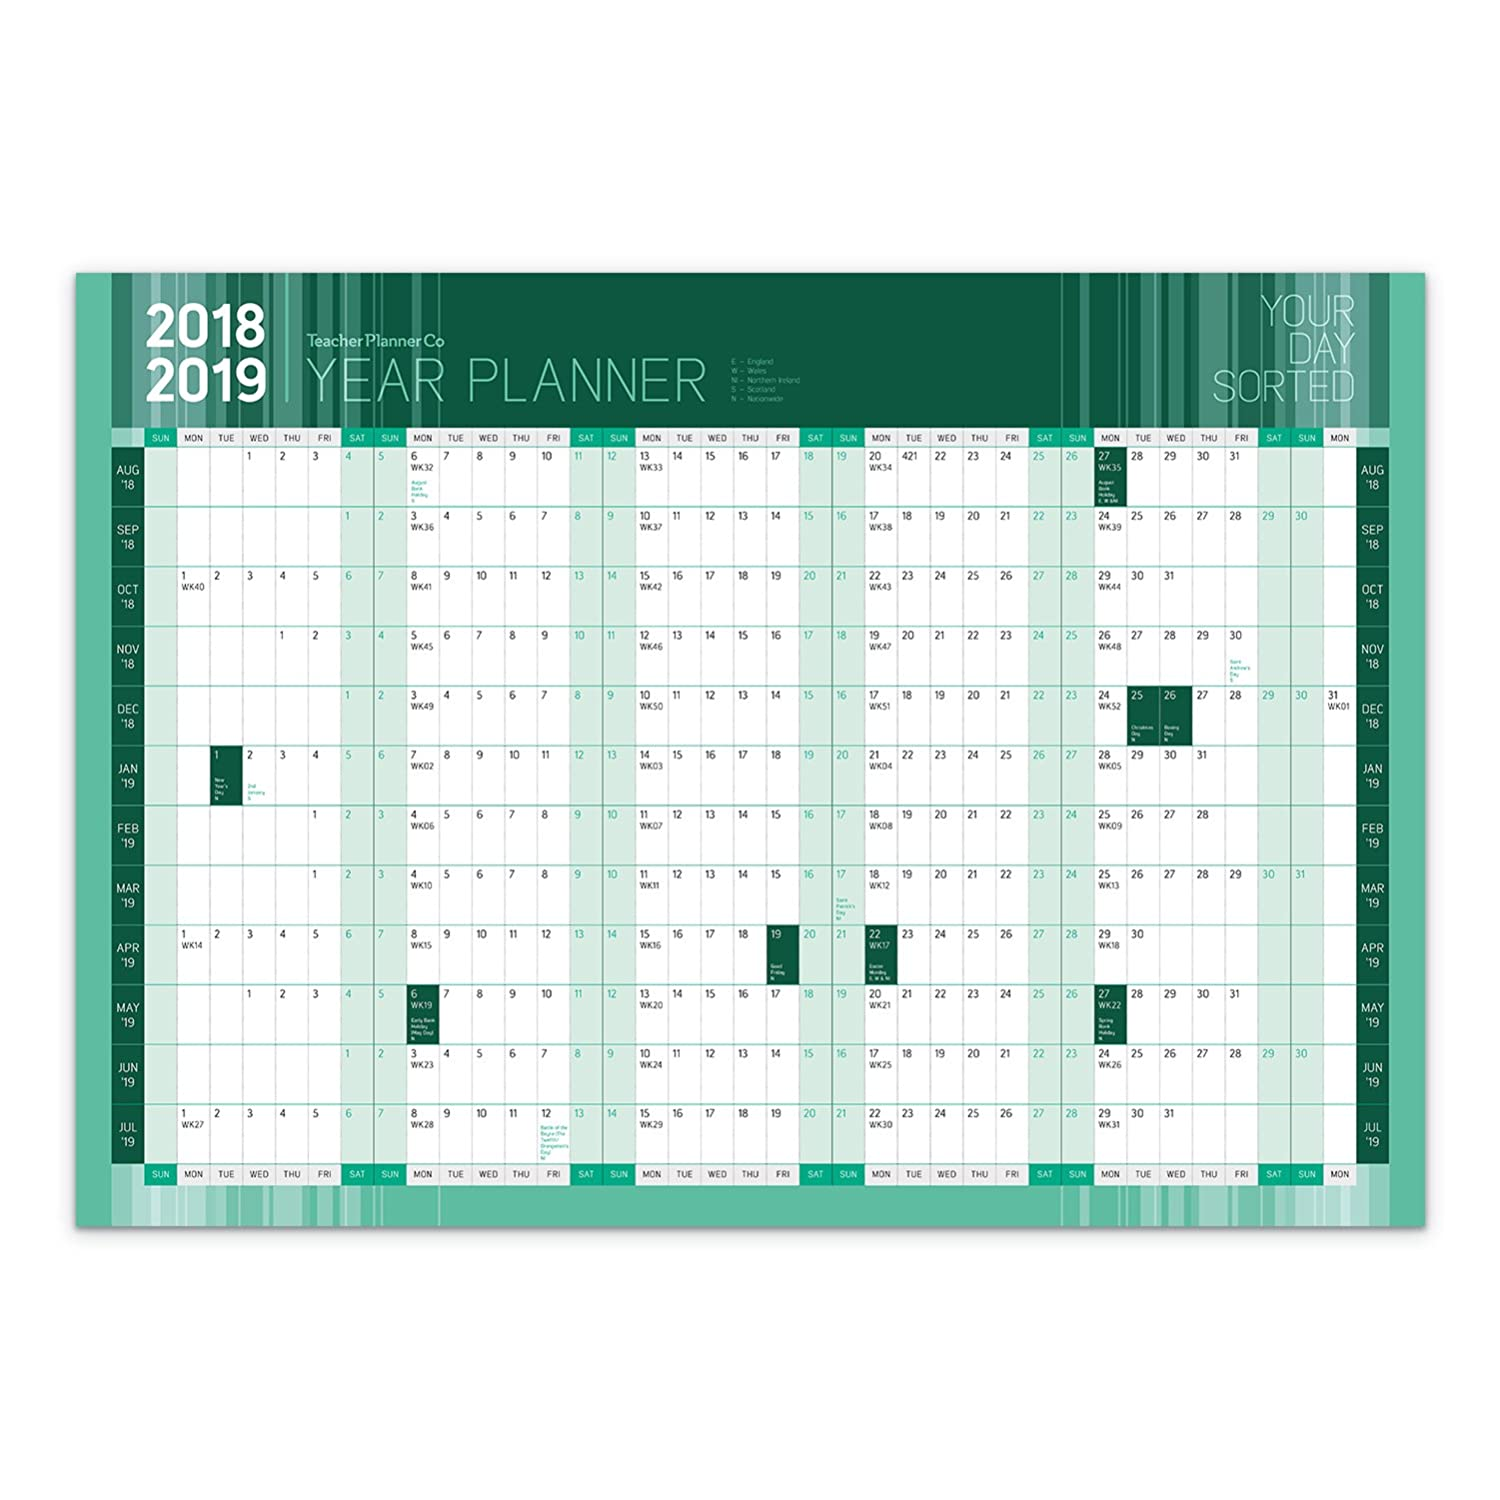 Grande A1 2017 – 18 accademico/studente Mid year Wall planner calendario Green Teacher Planner Company Ltd